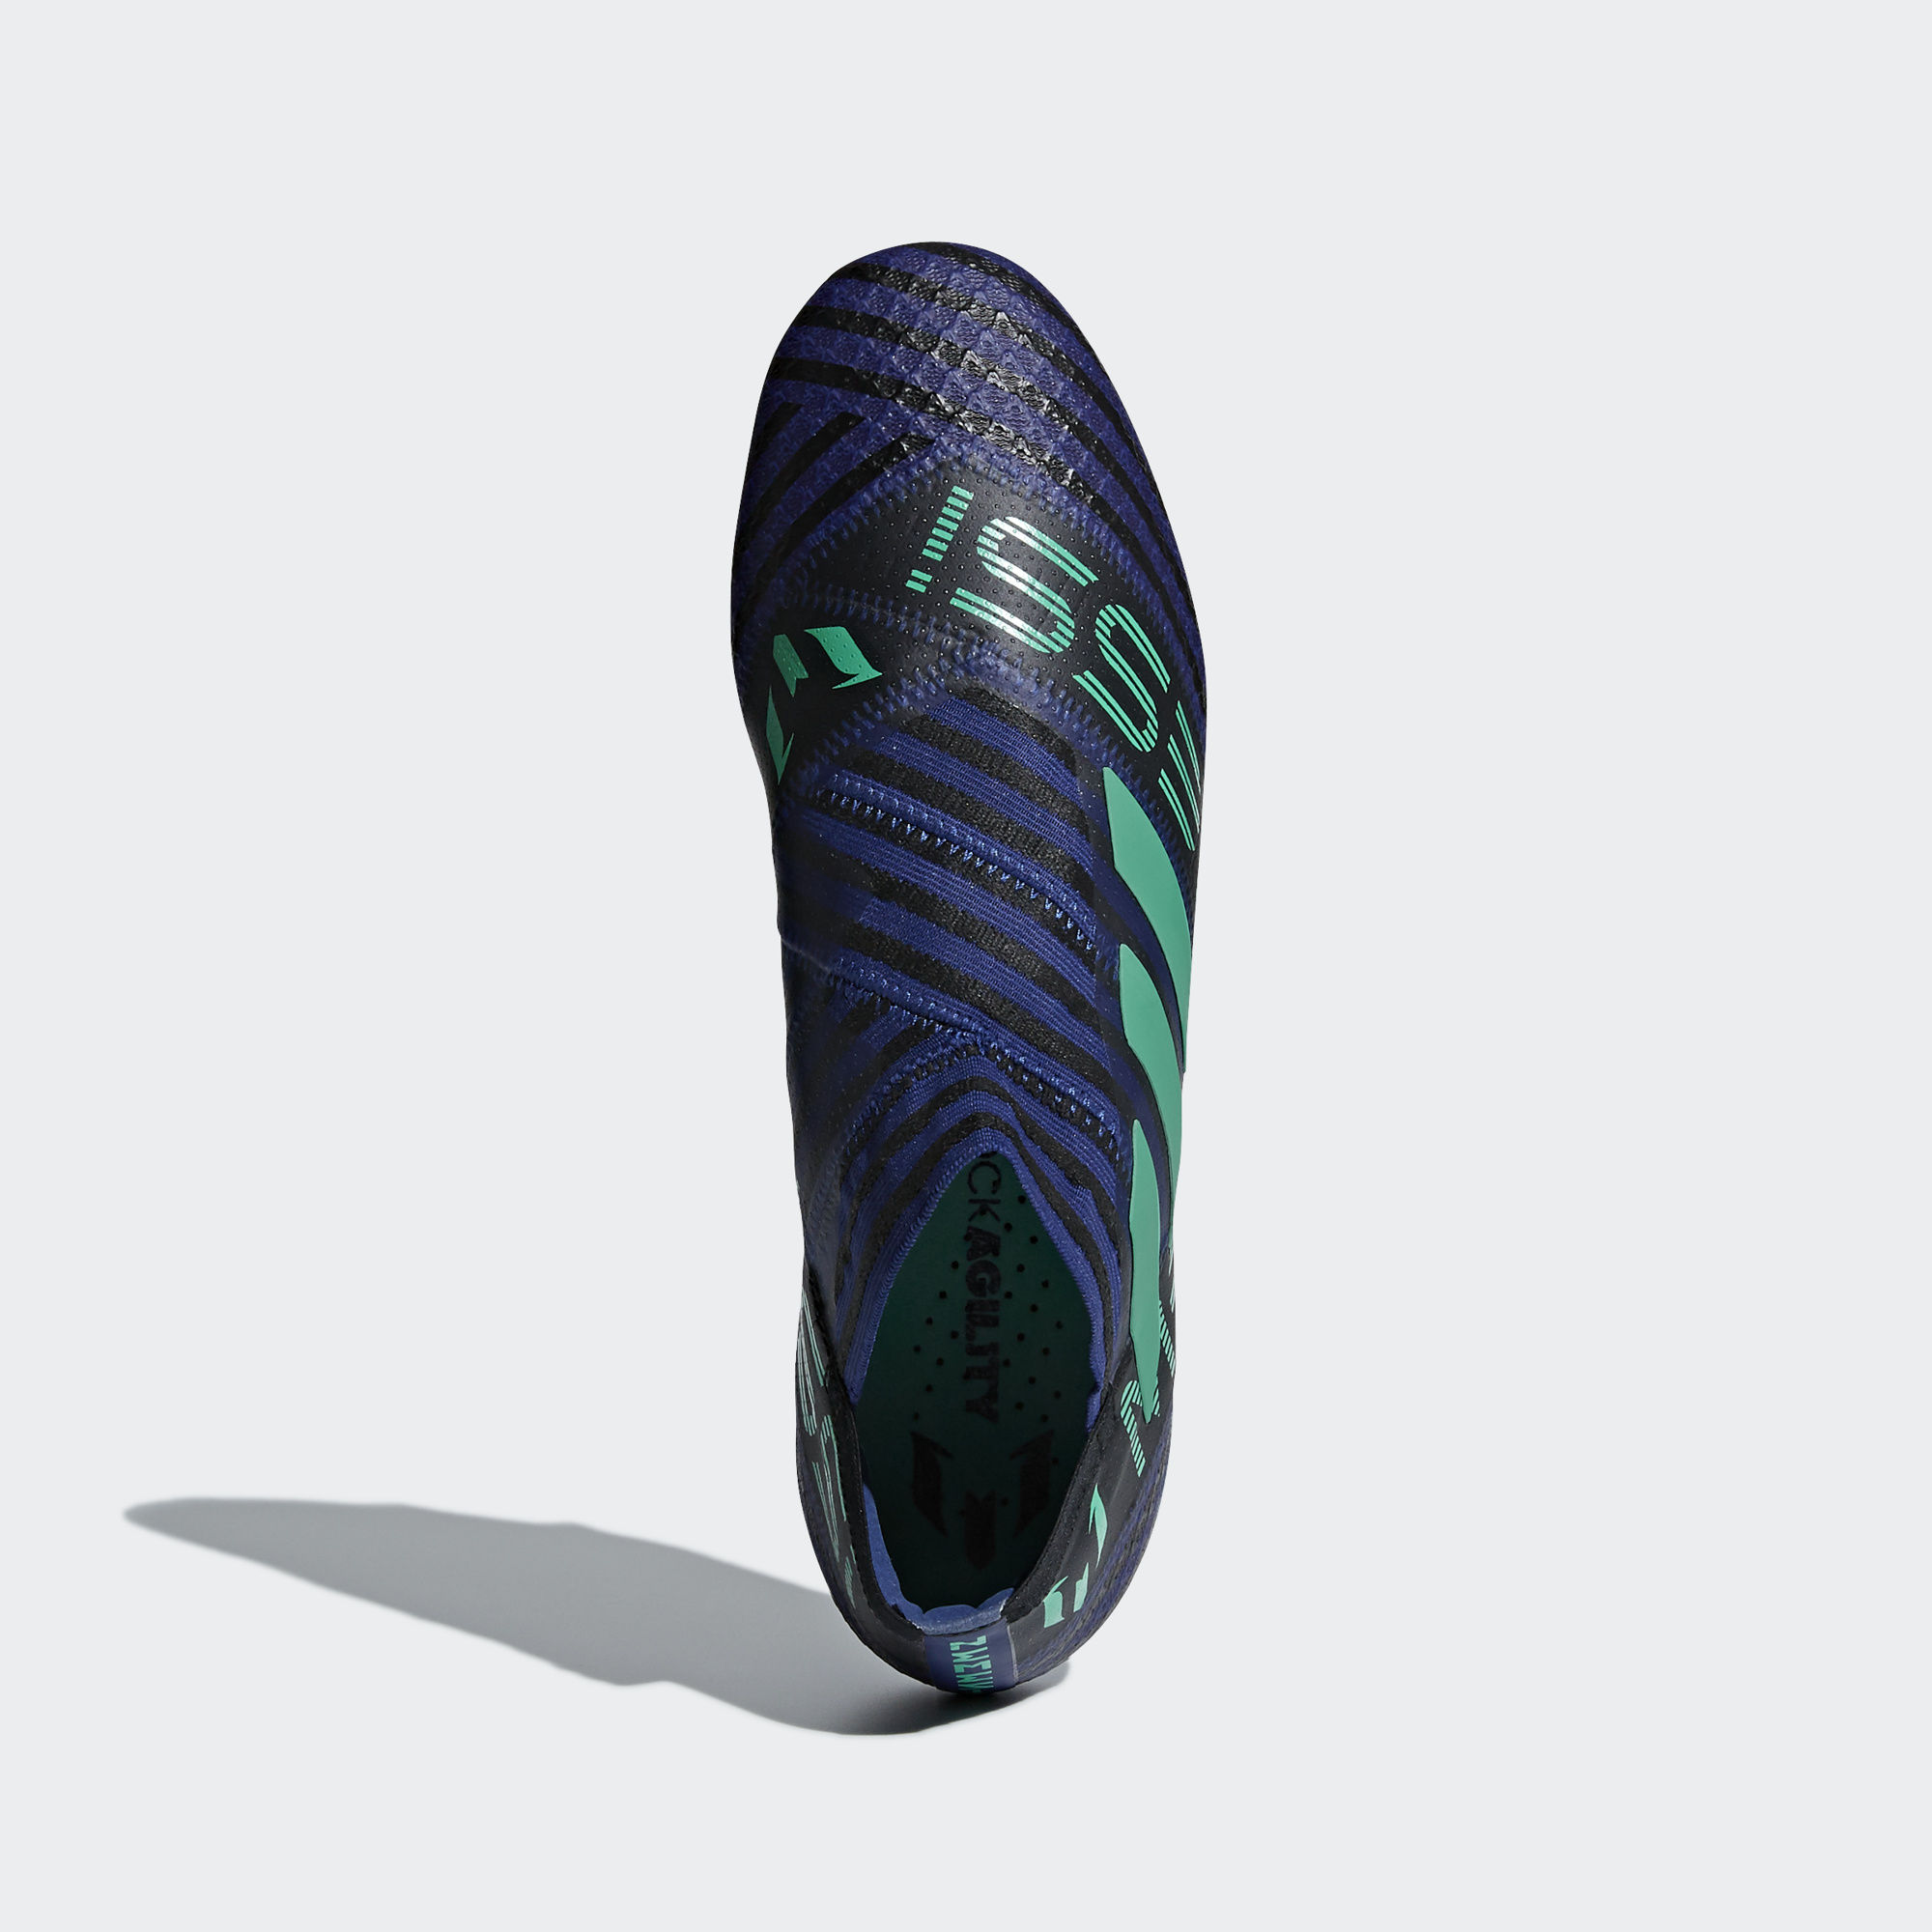 01f819b67768 ... Click to enlarge image  adidas nemeziz messi 17 360 agility fg deadly strike-unity ink hi-res green core black c.jpg  ...